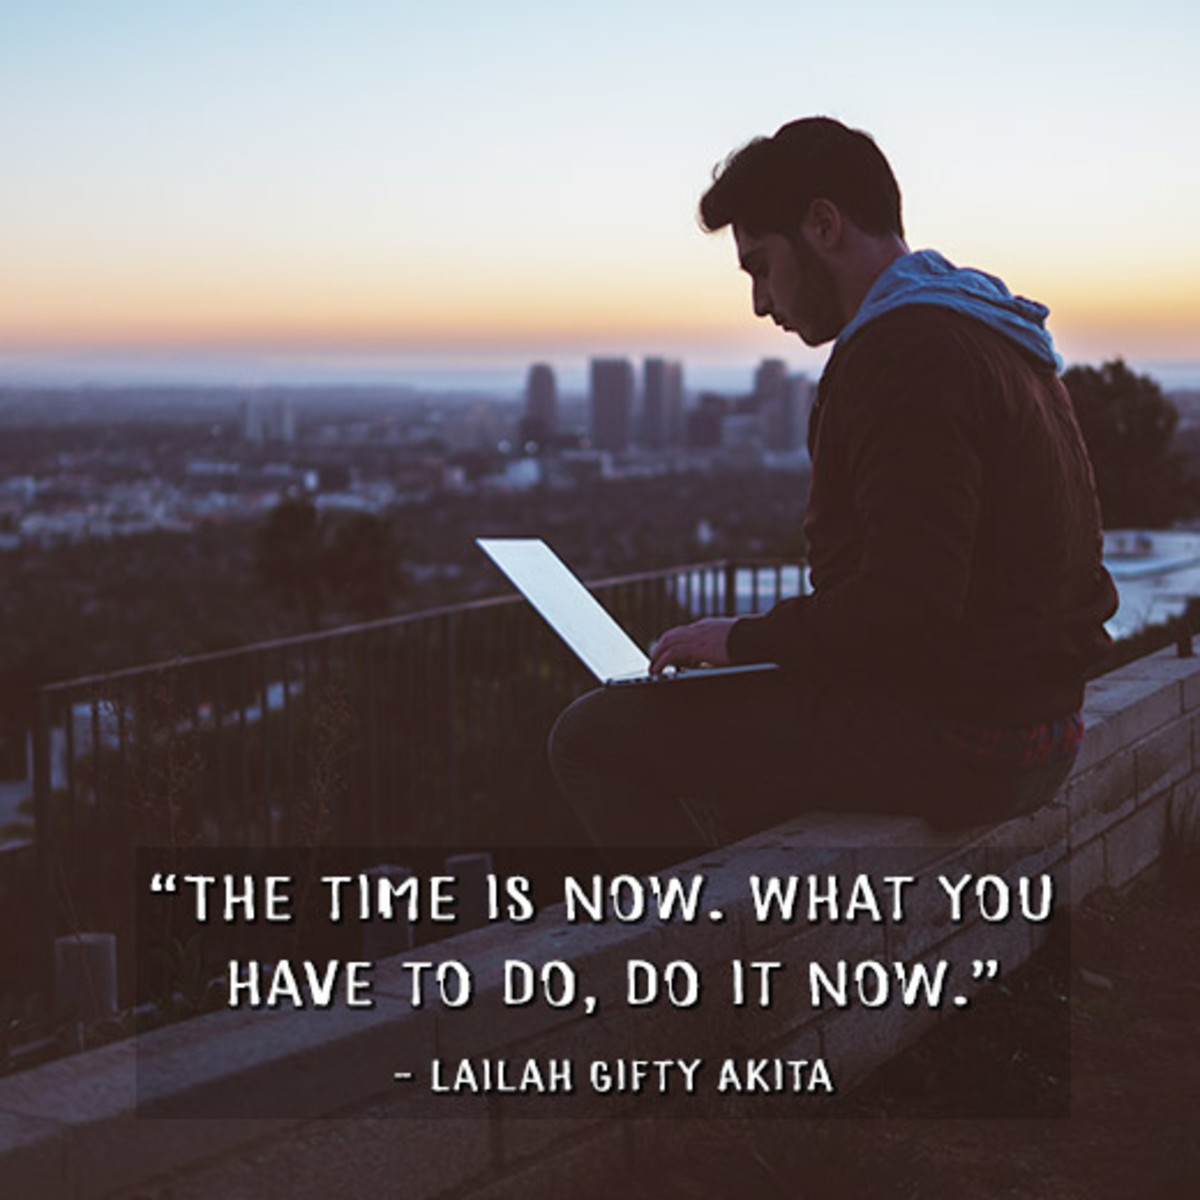 """""""The time is now. What you have to do, do it now."""" —Lailah Gifty Akita"""